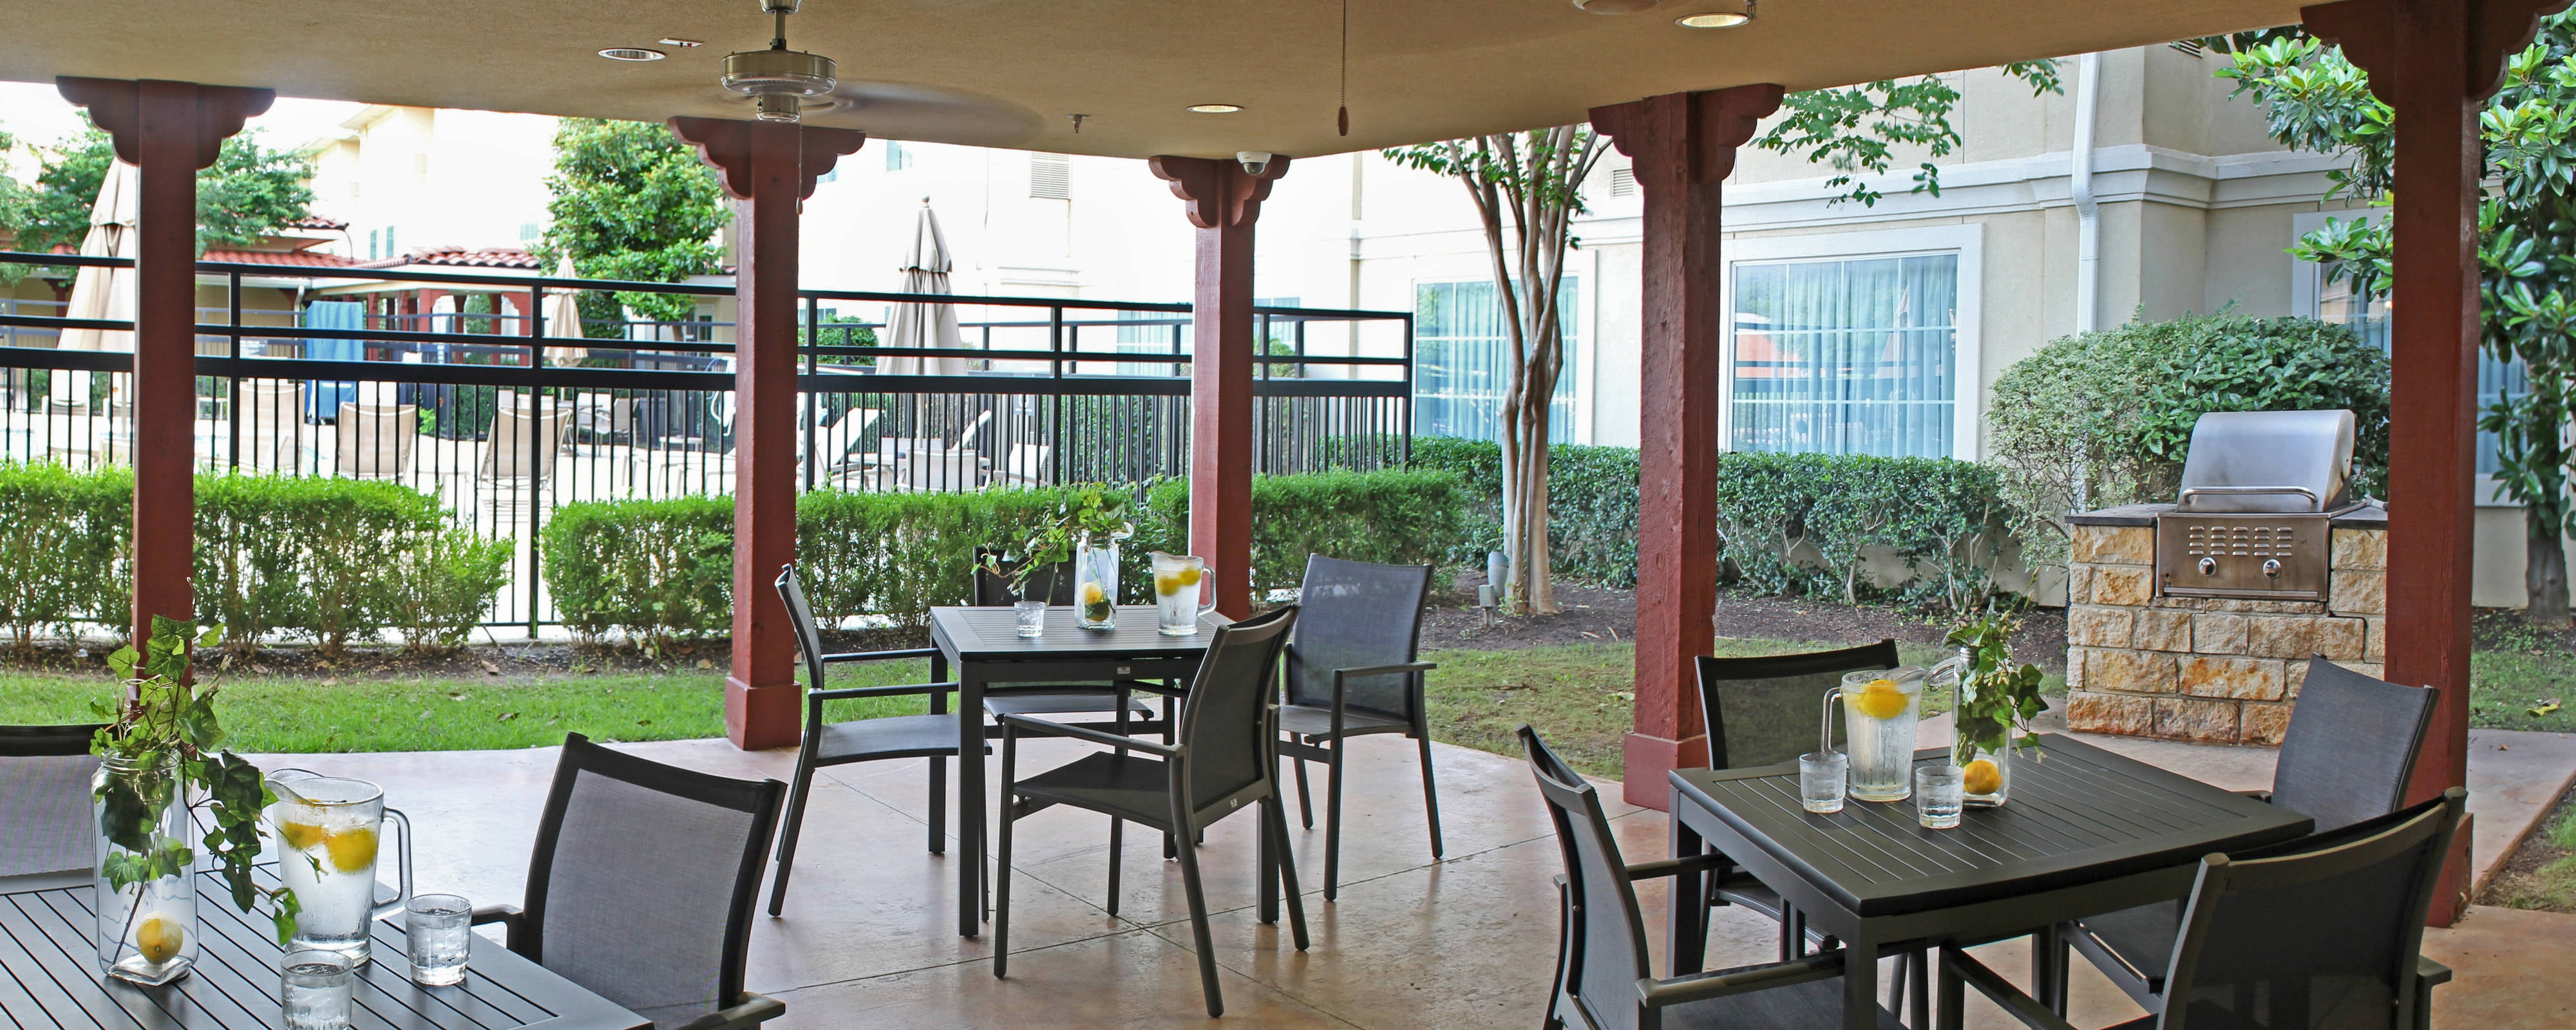 Temple Texas Hotel Outdoor Patio & Grill